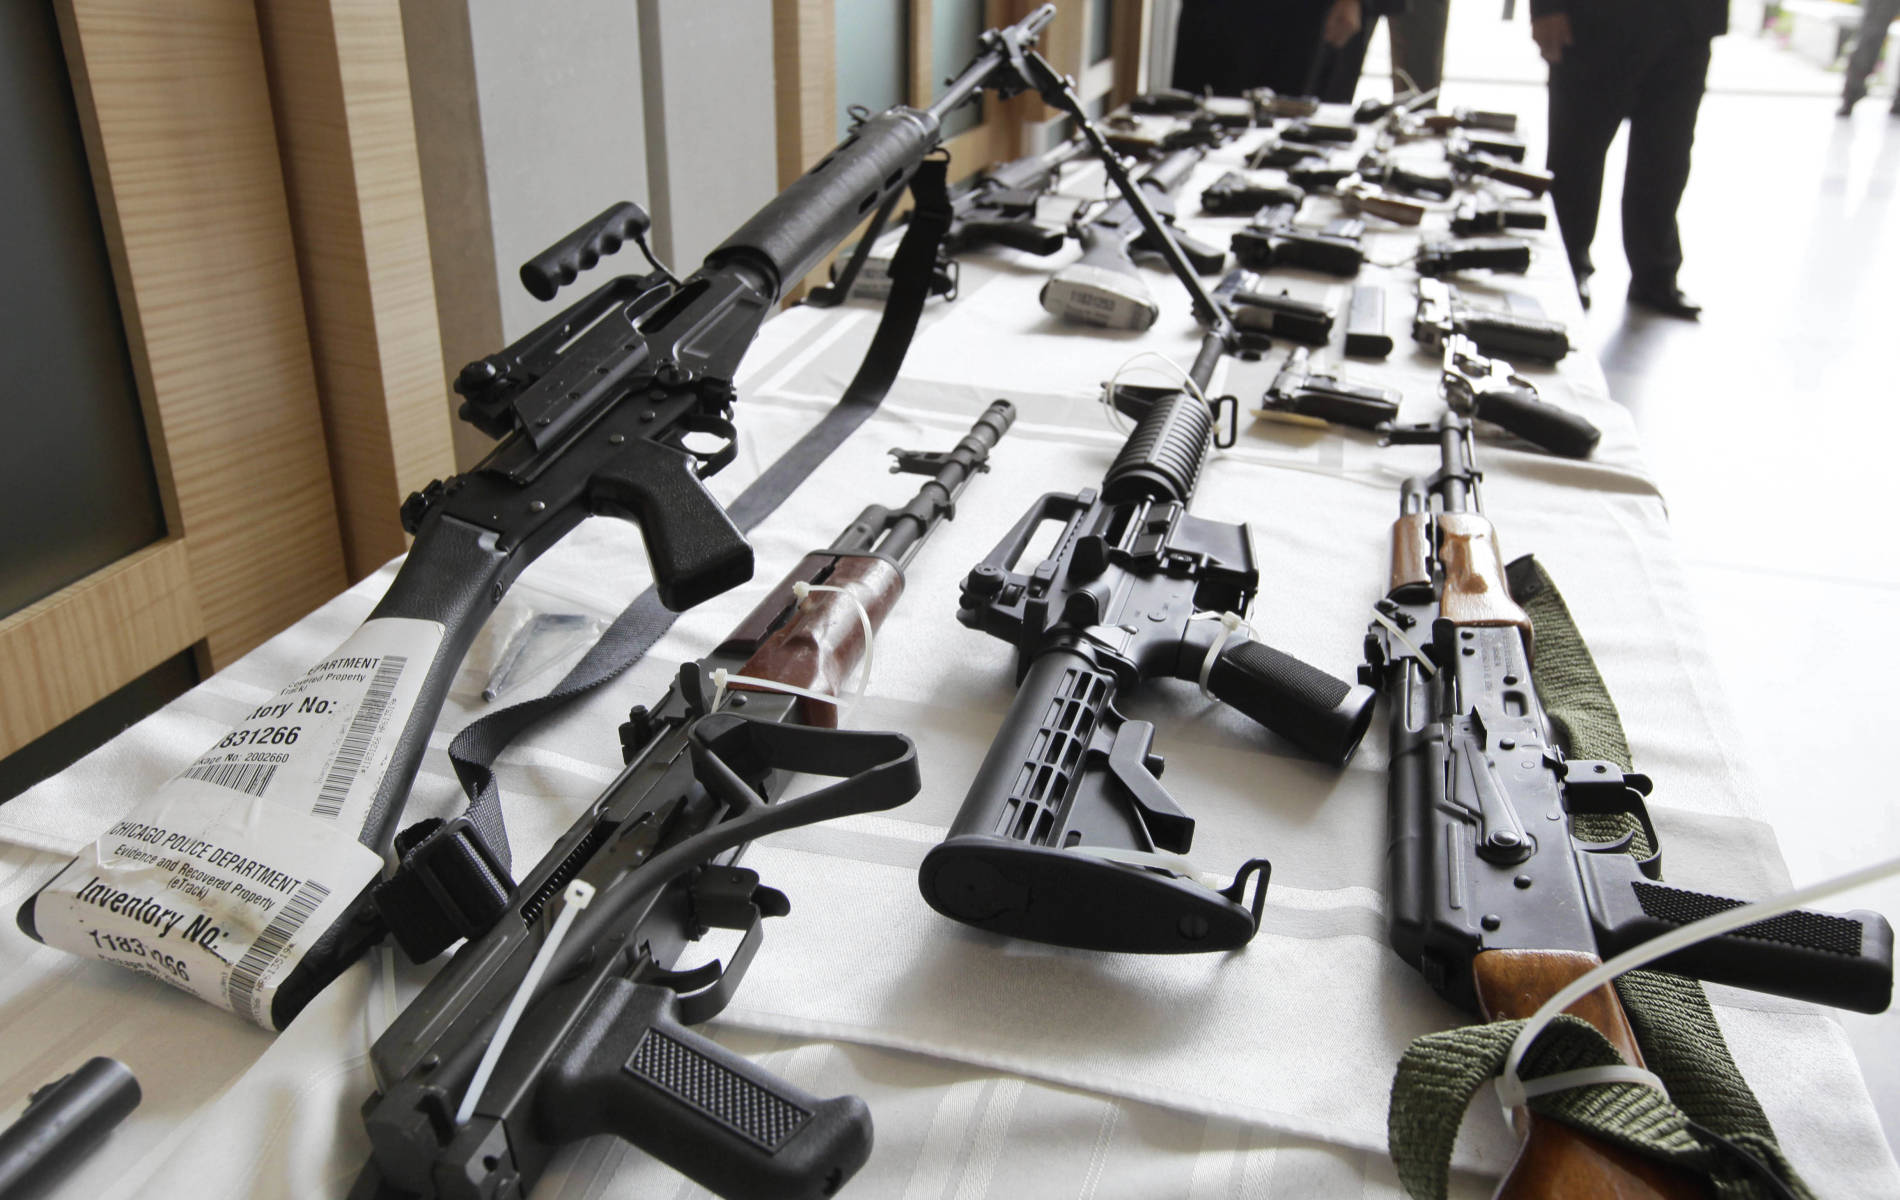 What Are The Gun Laws In Tennessee? The State's Legislation Includes A Big Loophole